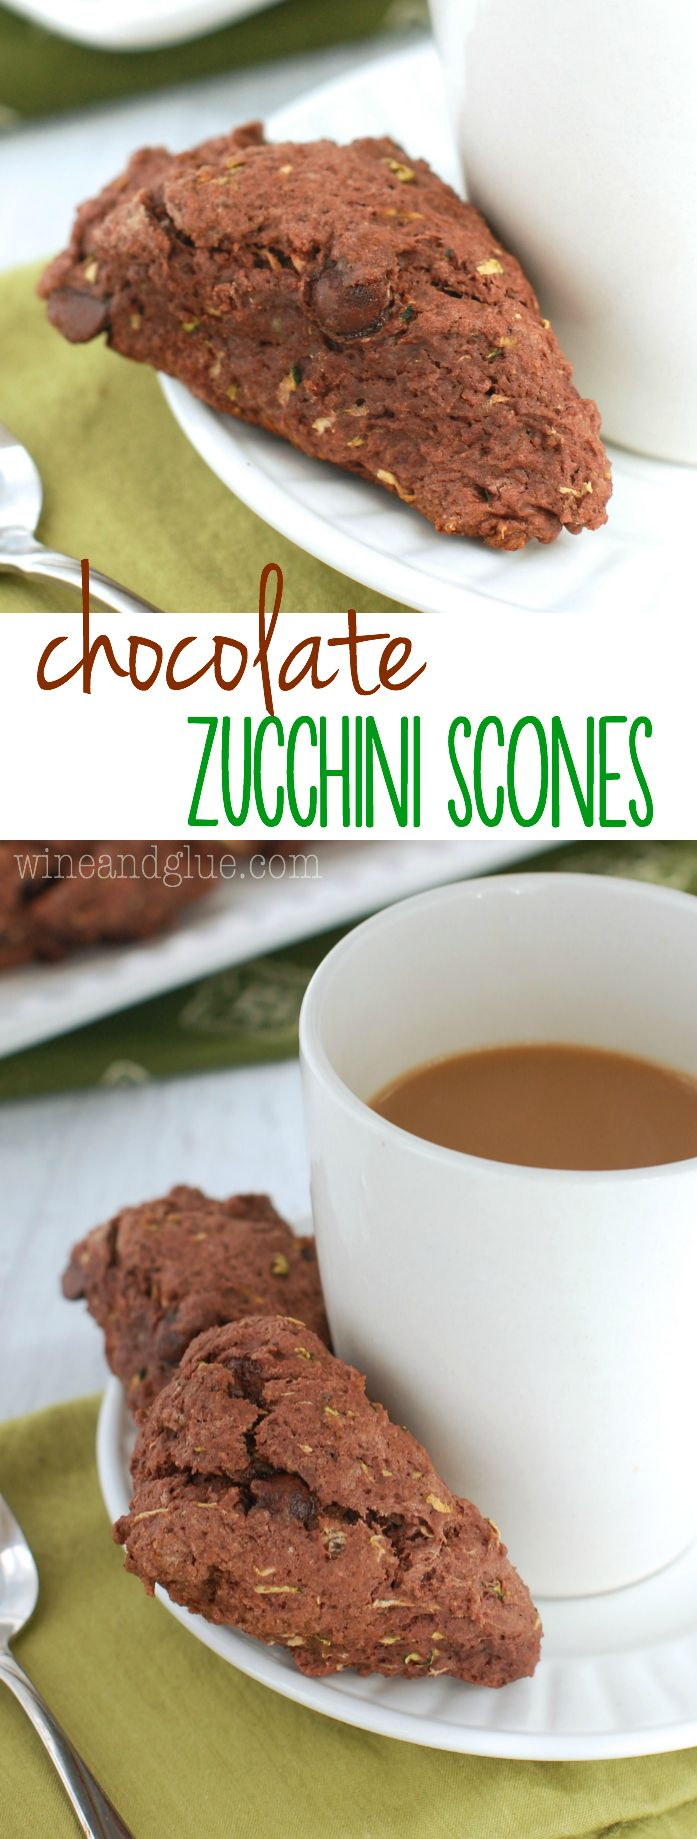 Chocolate Zucchini Scones | Chocolate for breakfast in the form of a moist yummy scone!